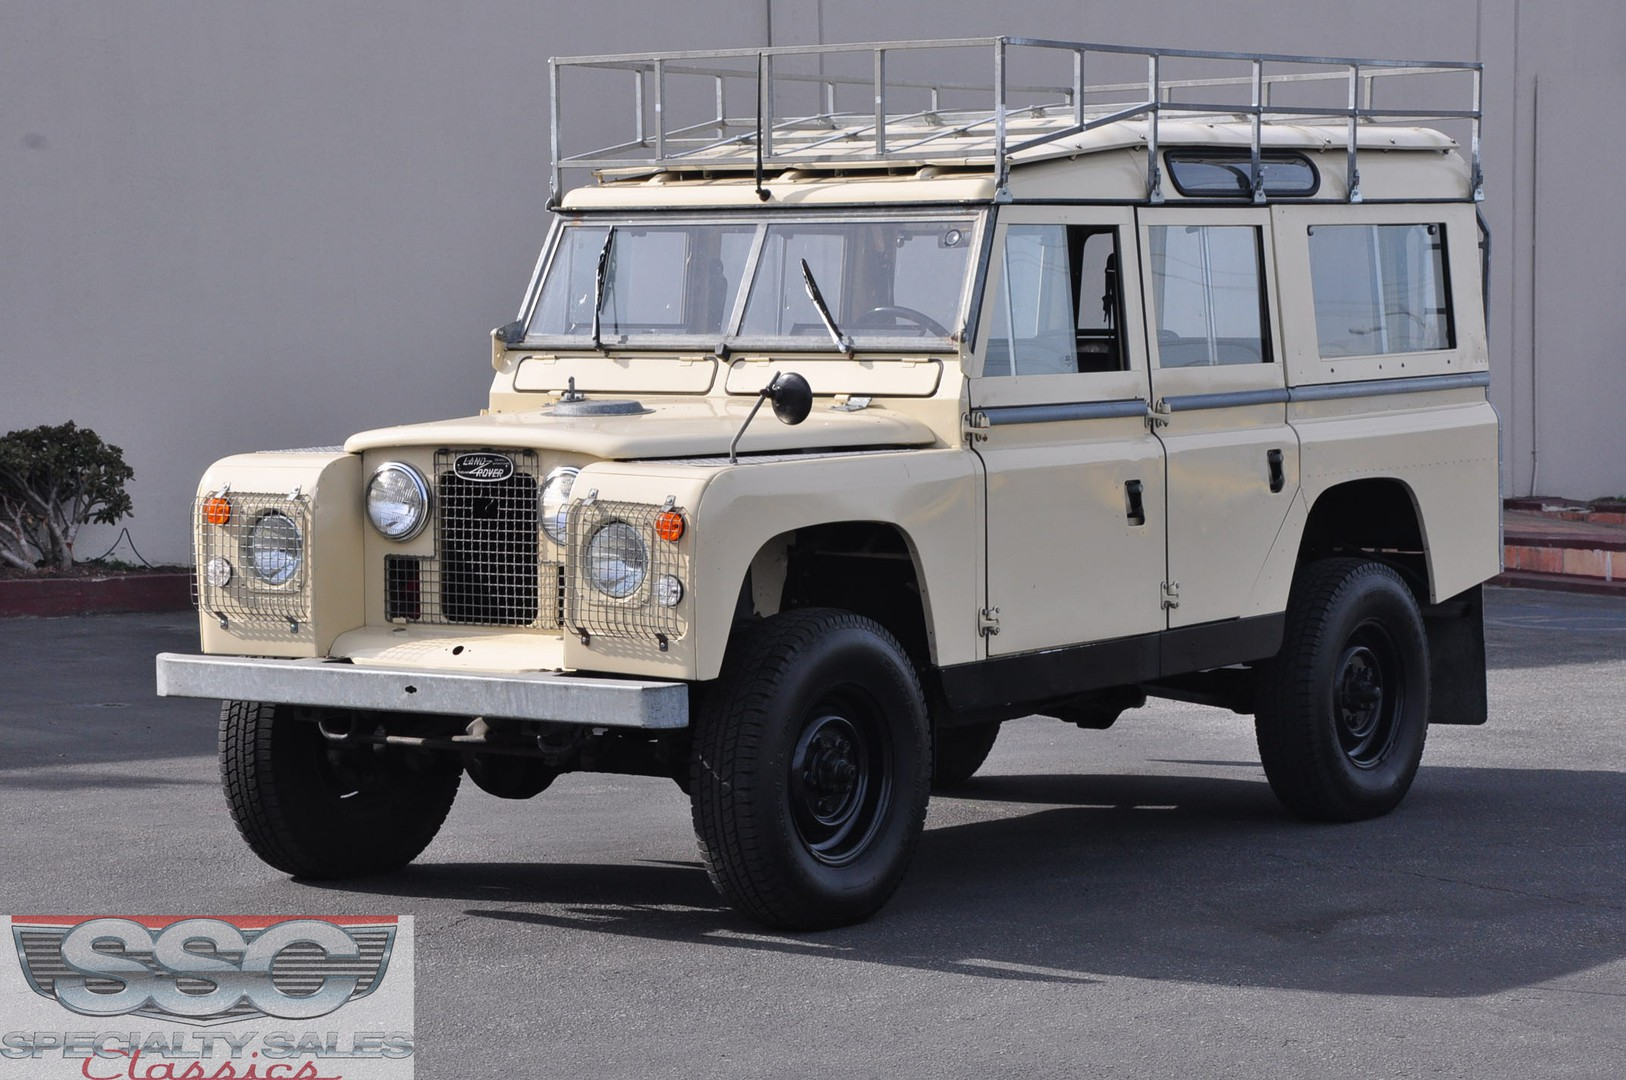 significant ohio rover of news most land landrover rovers for in the past years sale